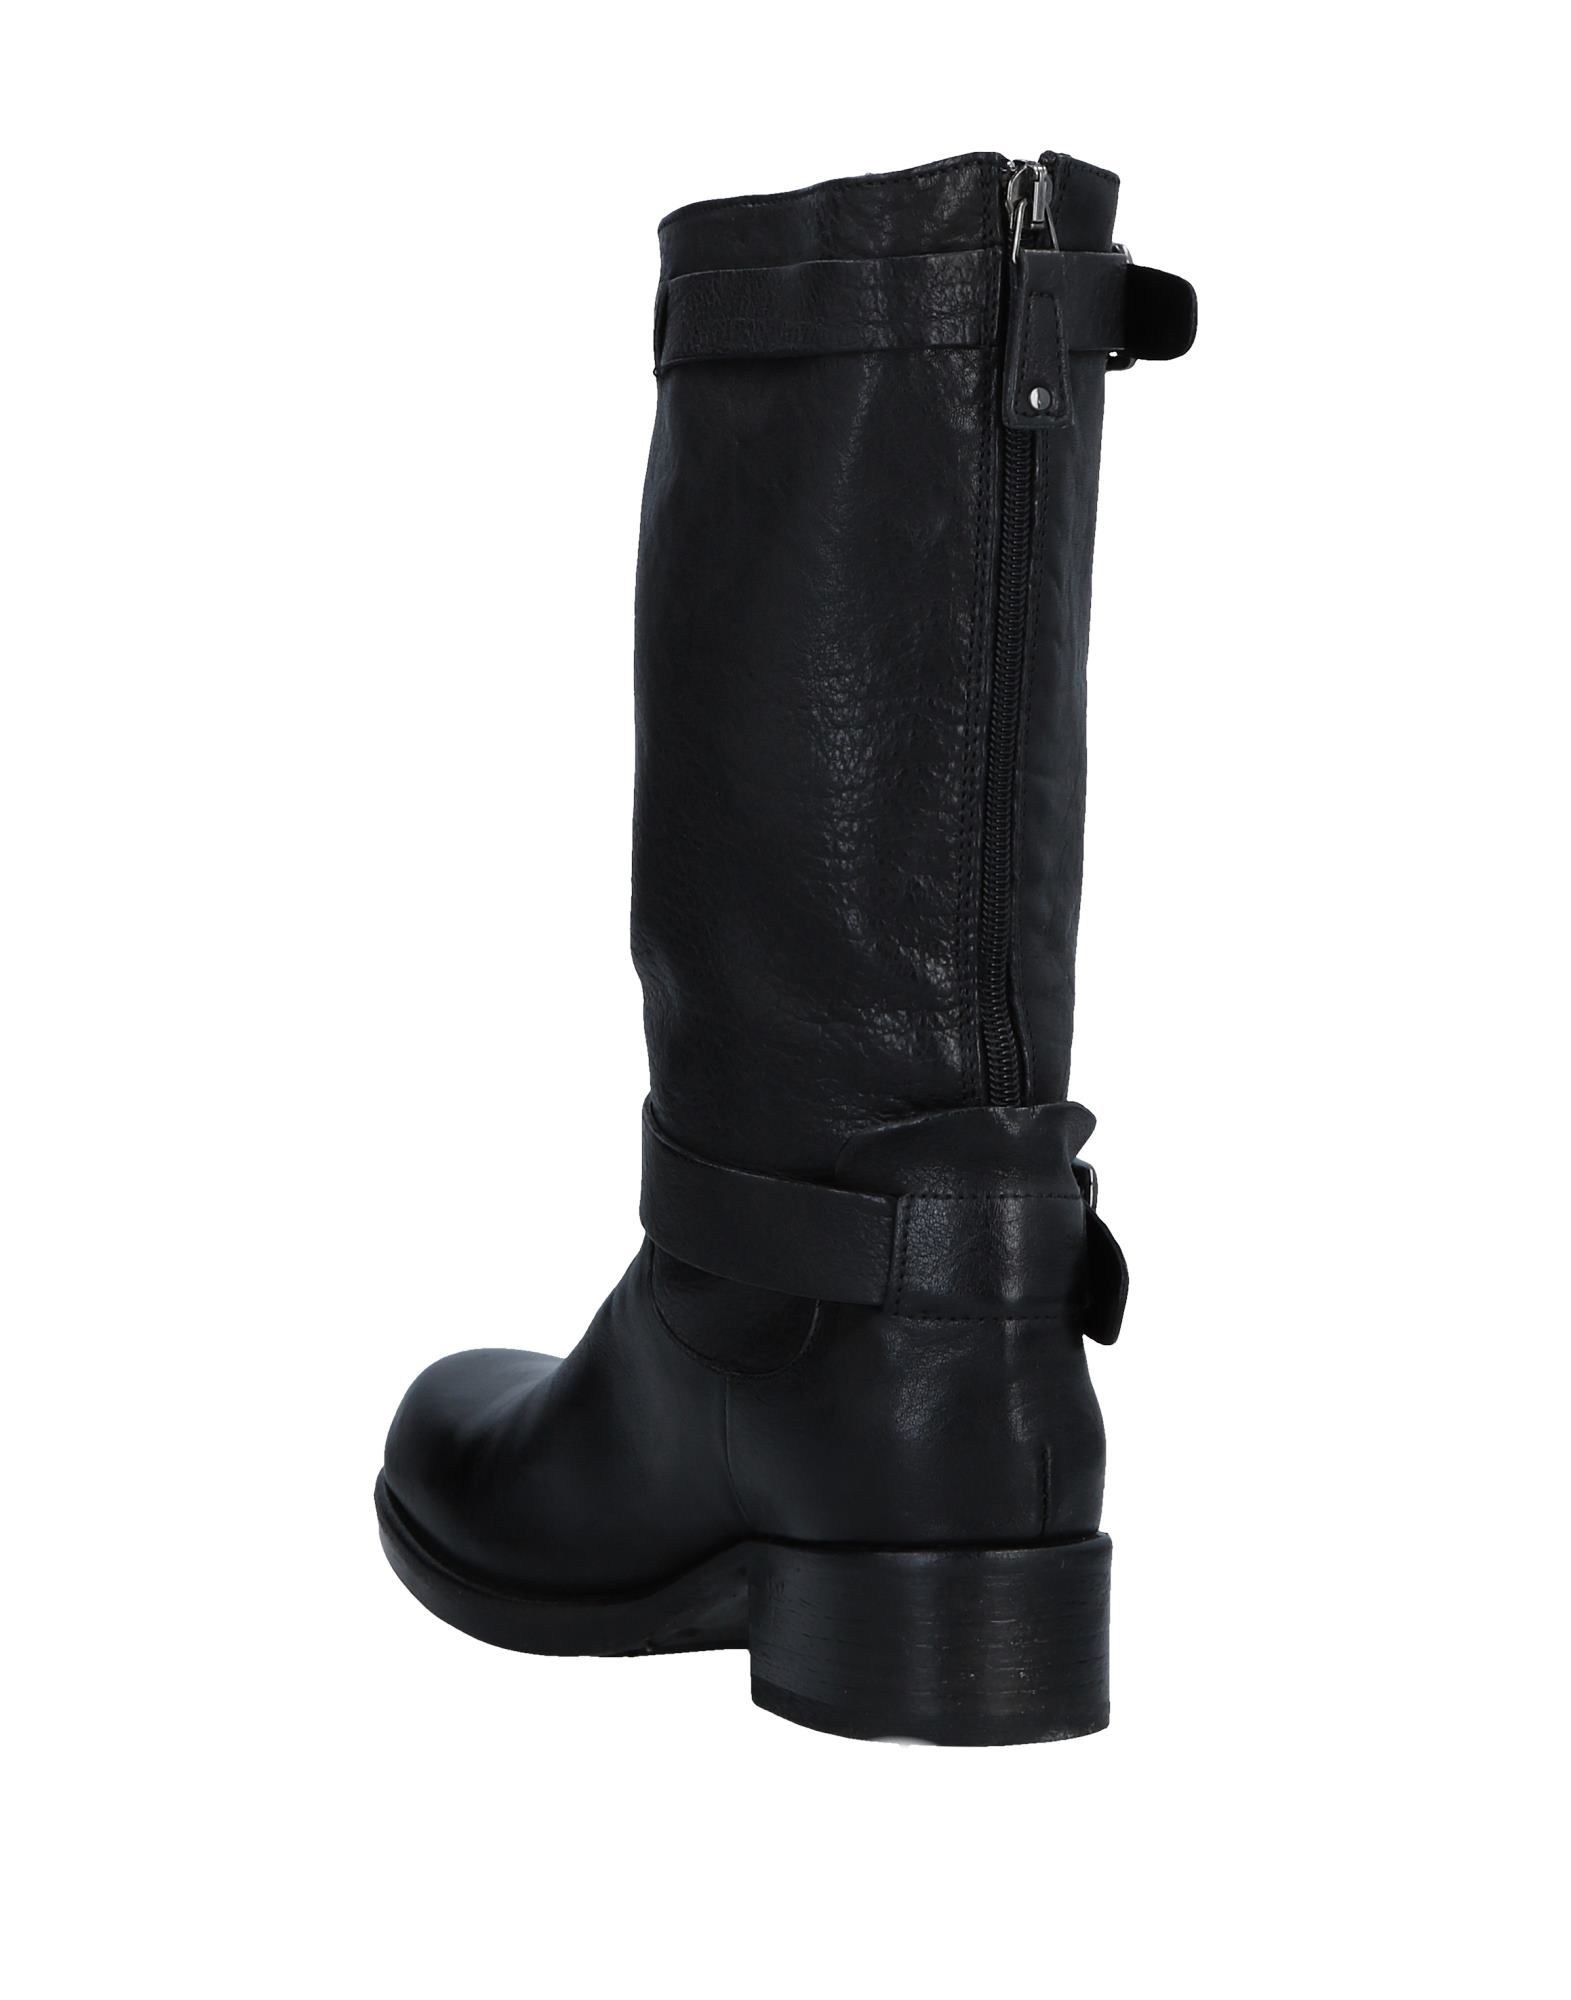 Hundred 100 Boots Boots Boots - Women Hundred 100 Boots online on  United Kingdom - 11515072UR dafe48